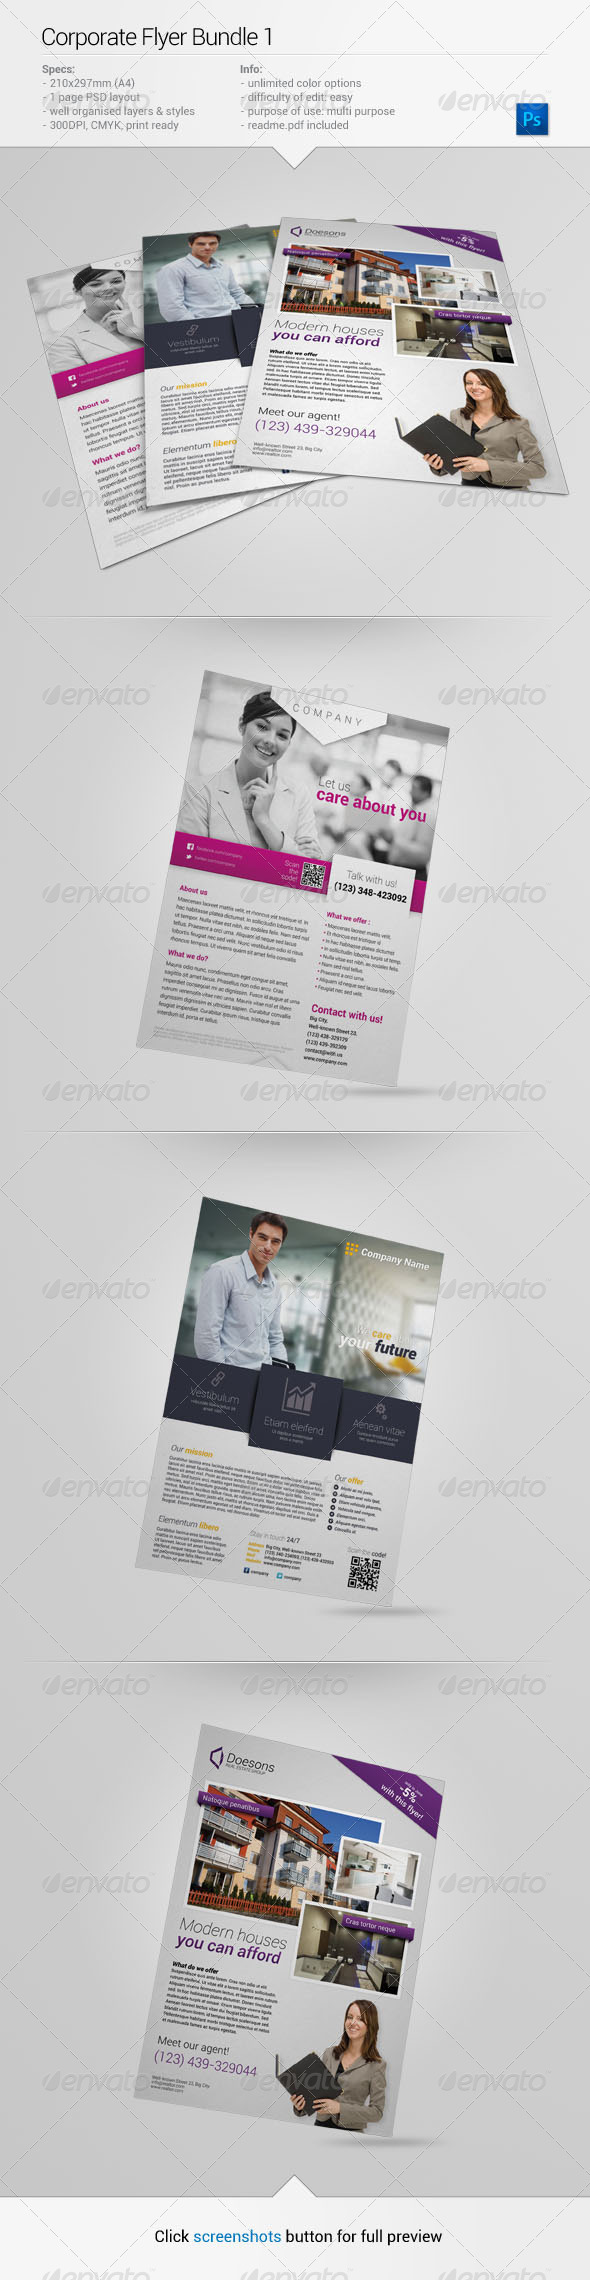 GraphicRiver Corporate Flyer Bundle 1 6584139